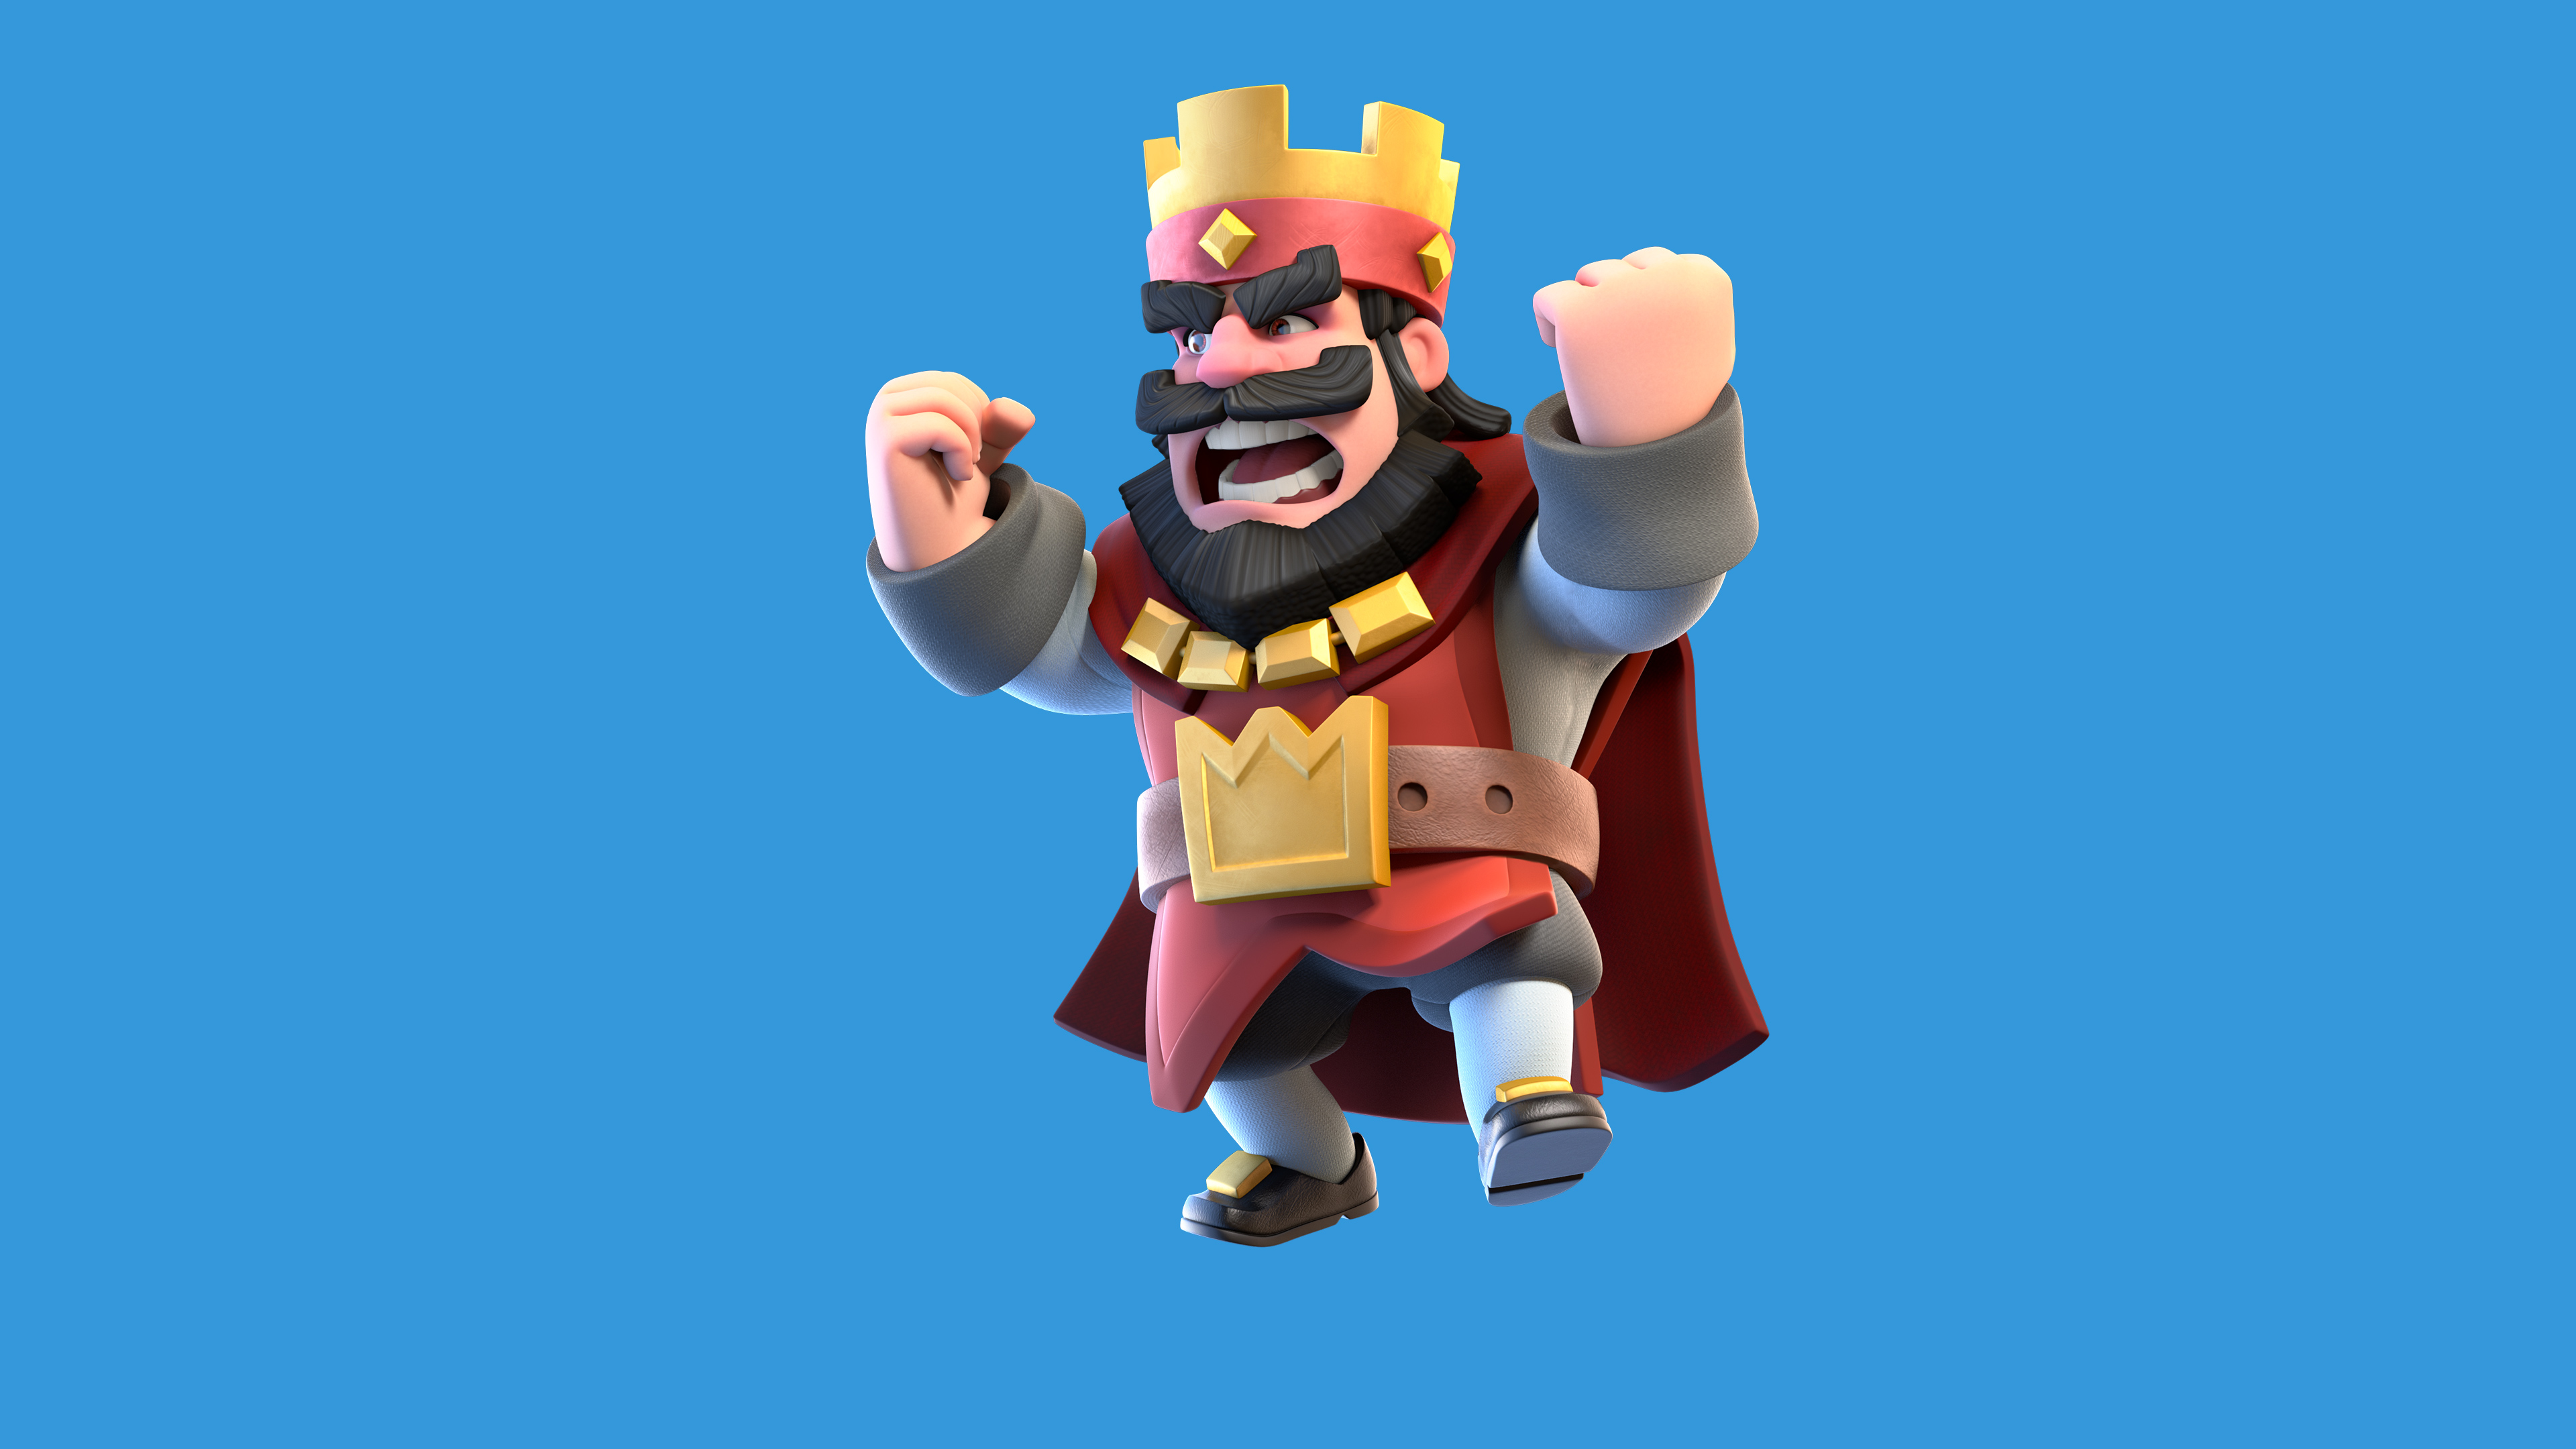 Clash royale red king hd games 4k wallpapers images backgrounds photos and pictures - Clash royale 2560x1440 ...